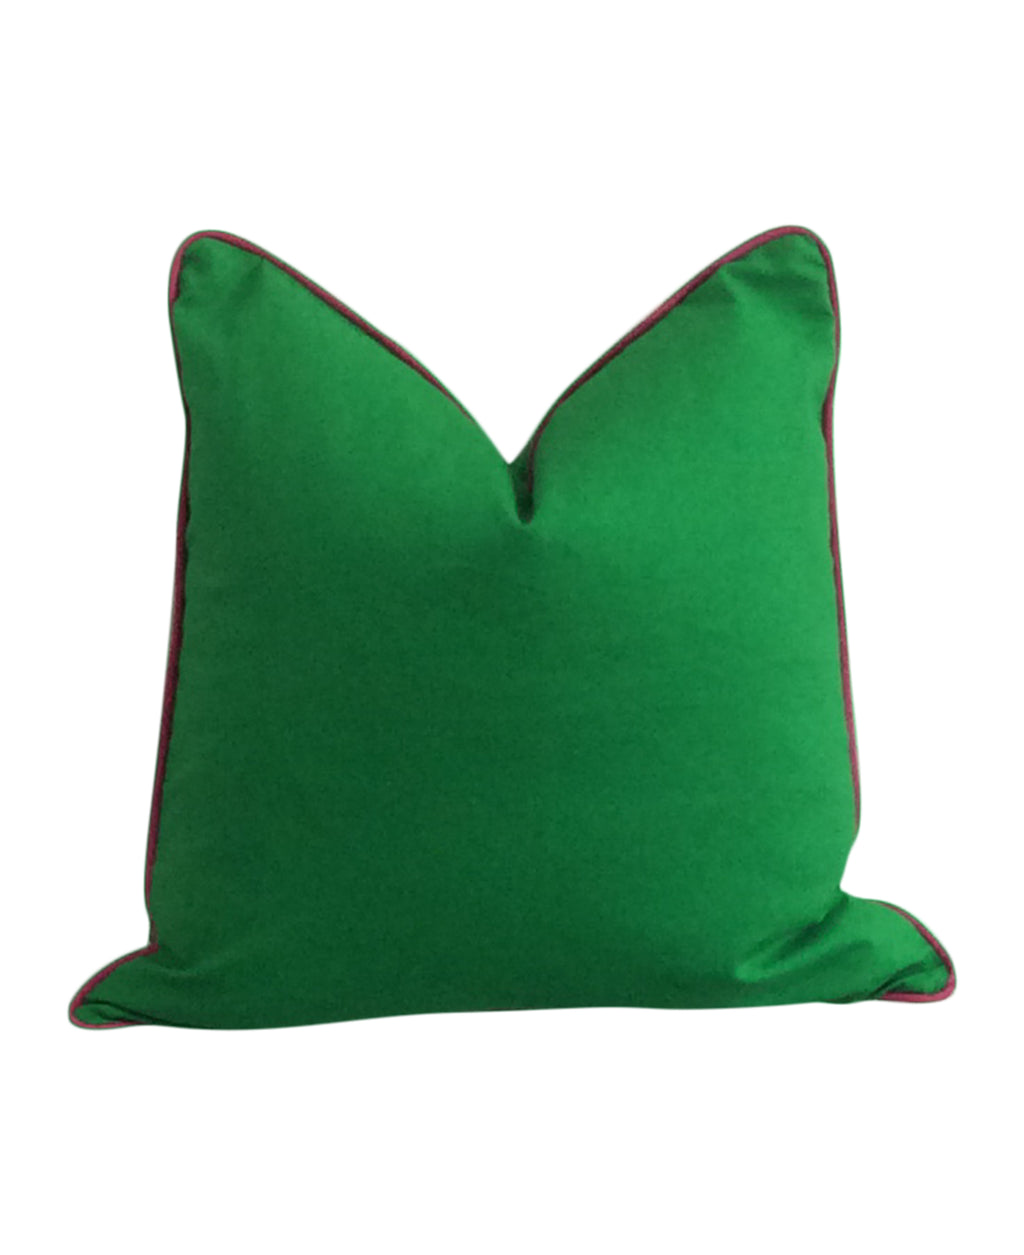 Kelly Green Fabric Pillow